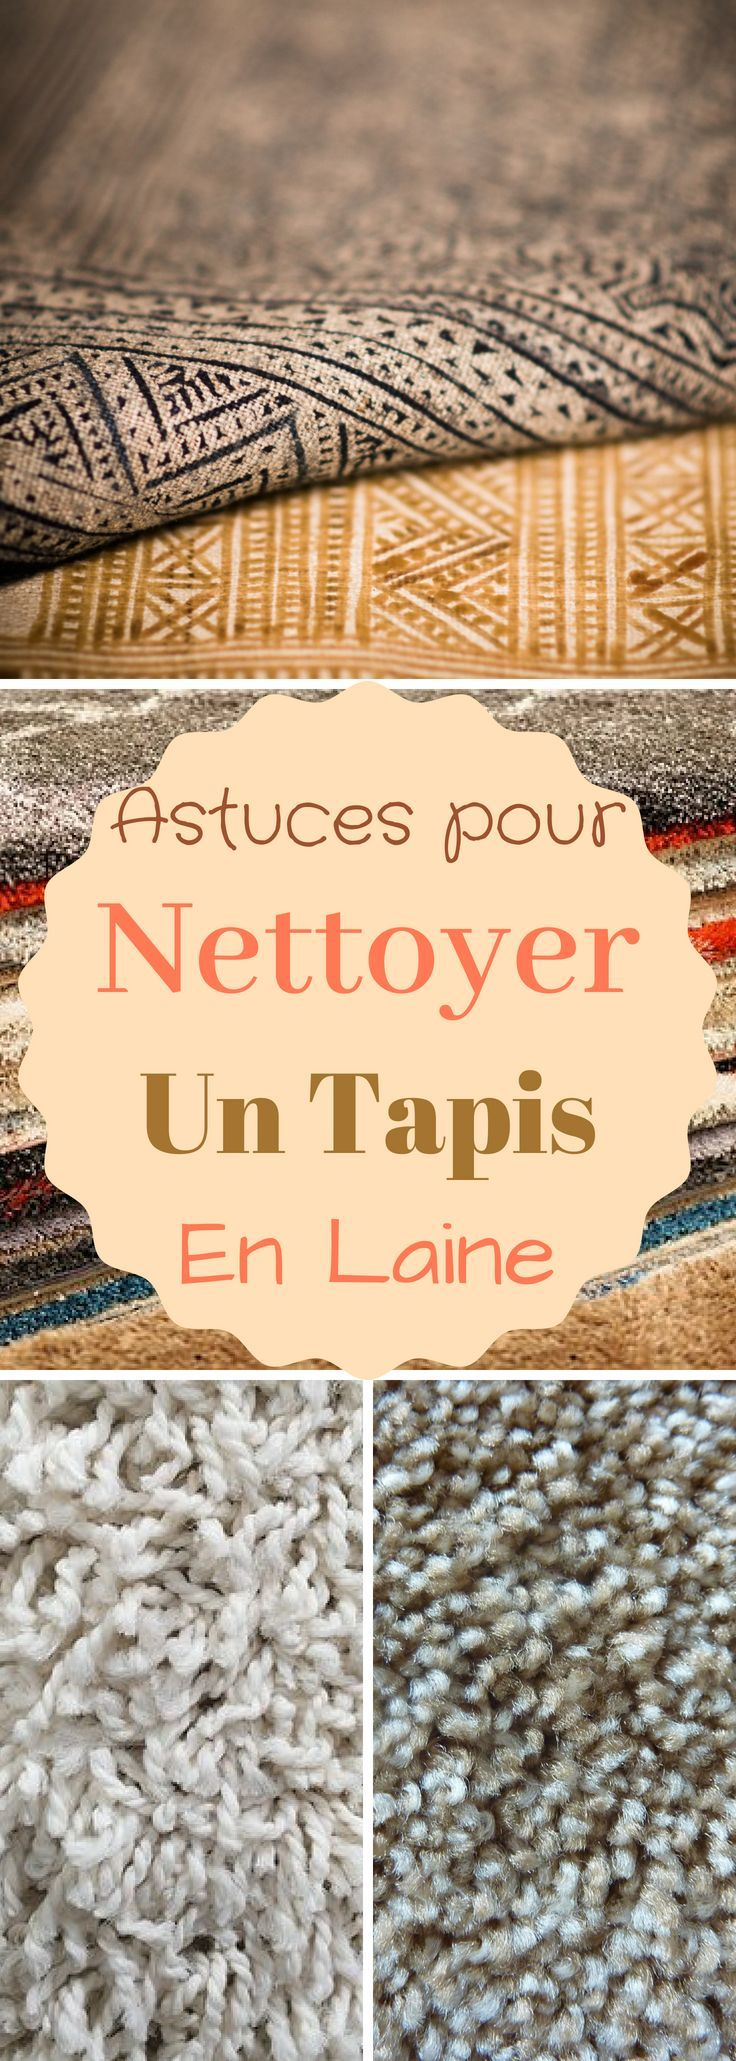 astuces comment nettoyer un tapis en laine lifestyle. Black Bedroom Furniture Sets. Home Design Ideas